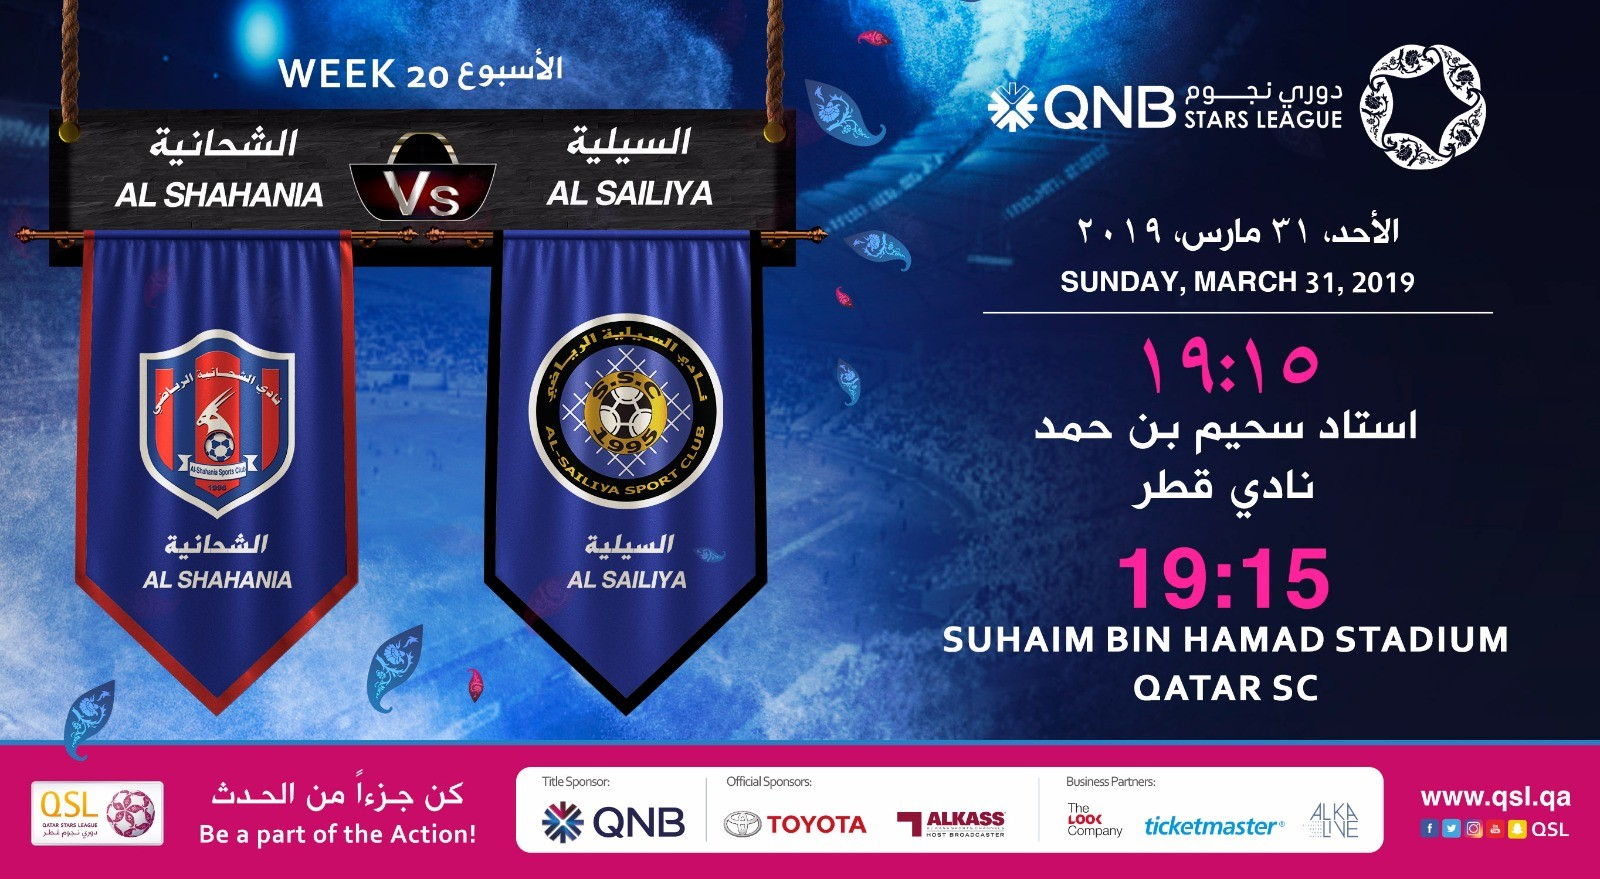 QNB Stars League Week 20 — Al Shahania vs Al Sailiya